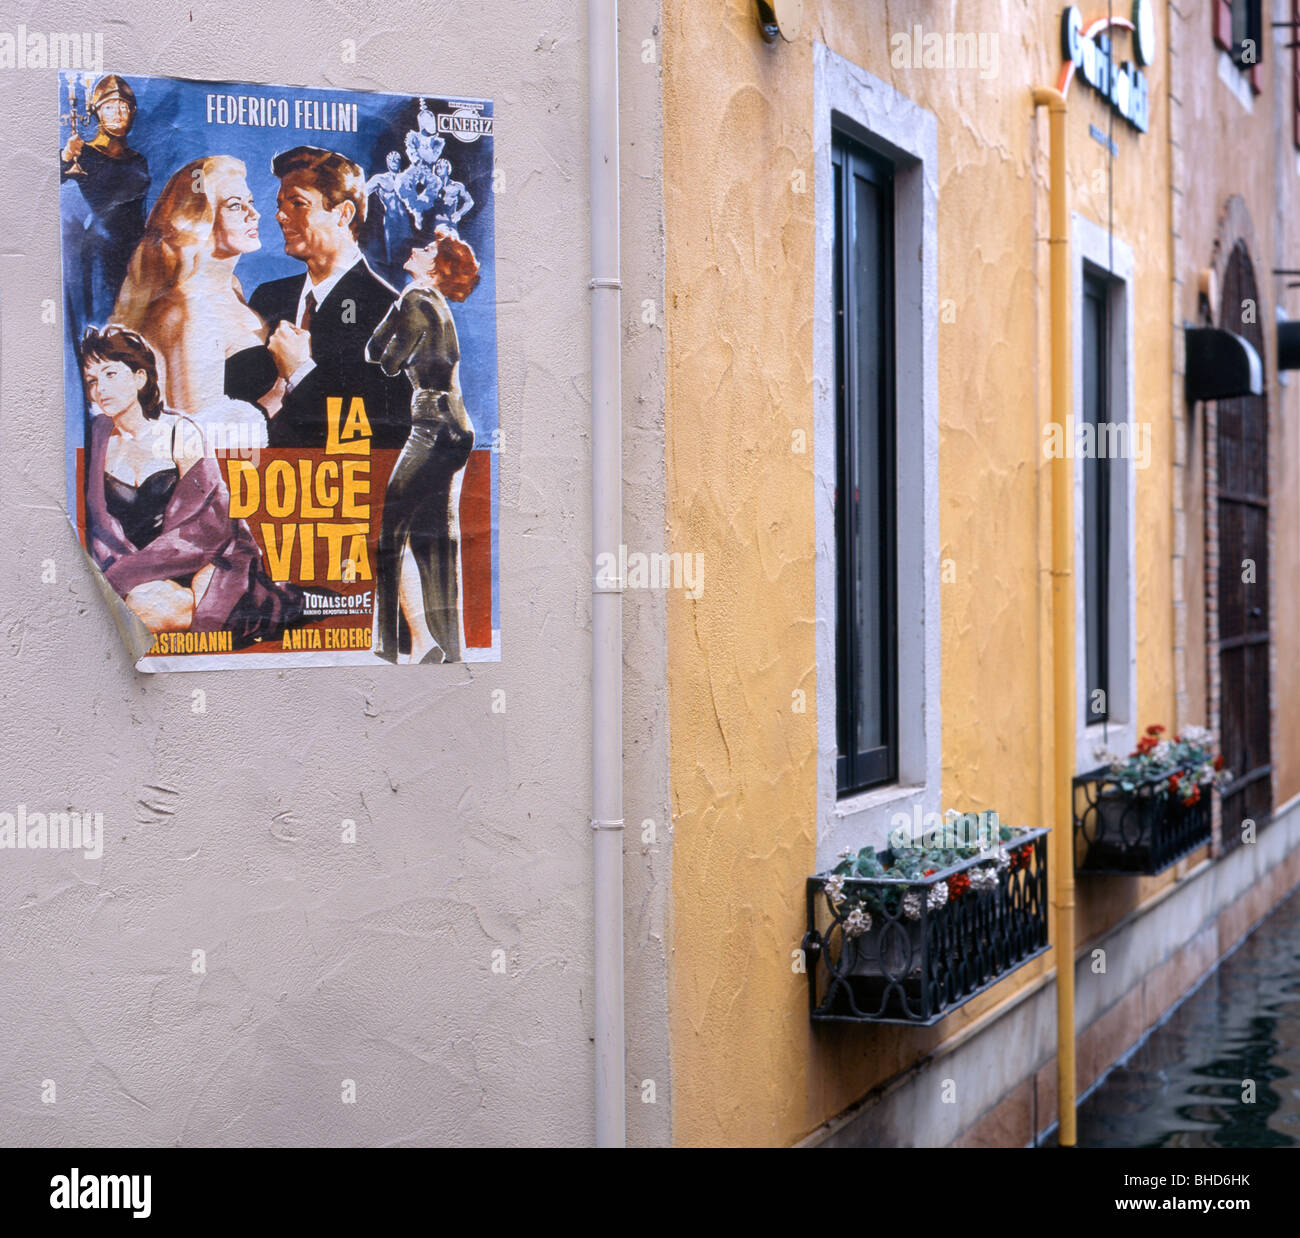 d6375084e7d La Dolce Vita movie Poster Villaggio Italia, Italian themed shopping,  restaurant complex in Nagoya